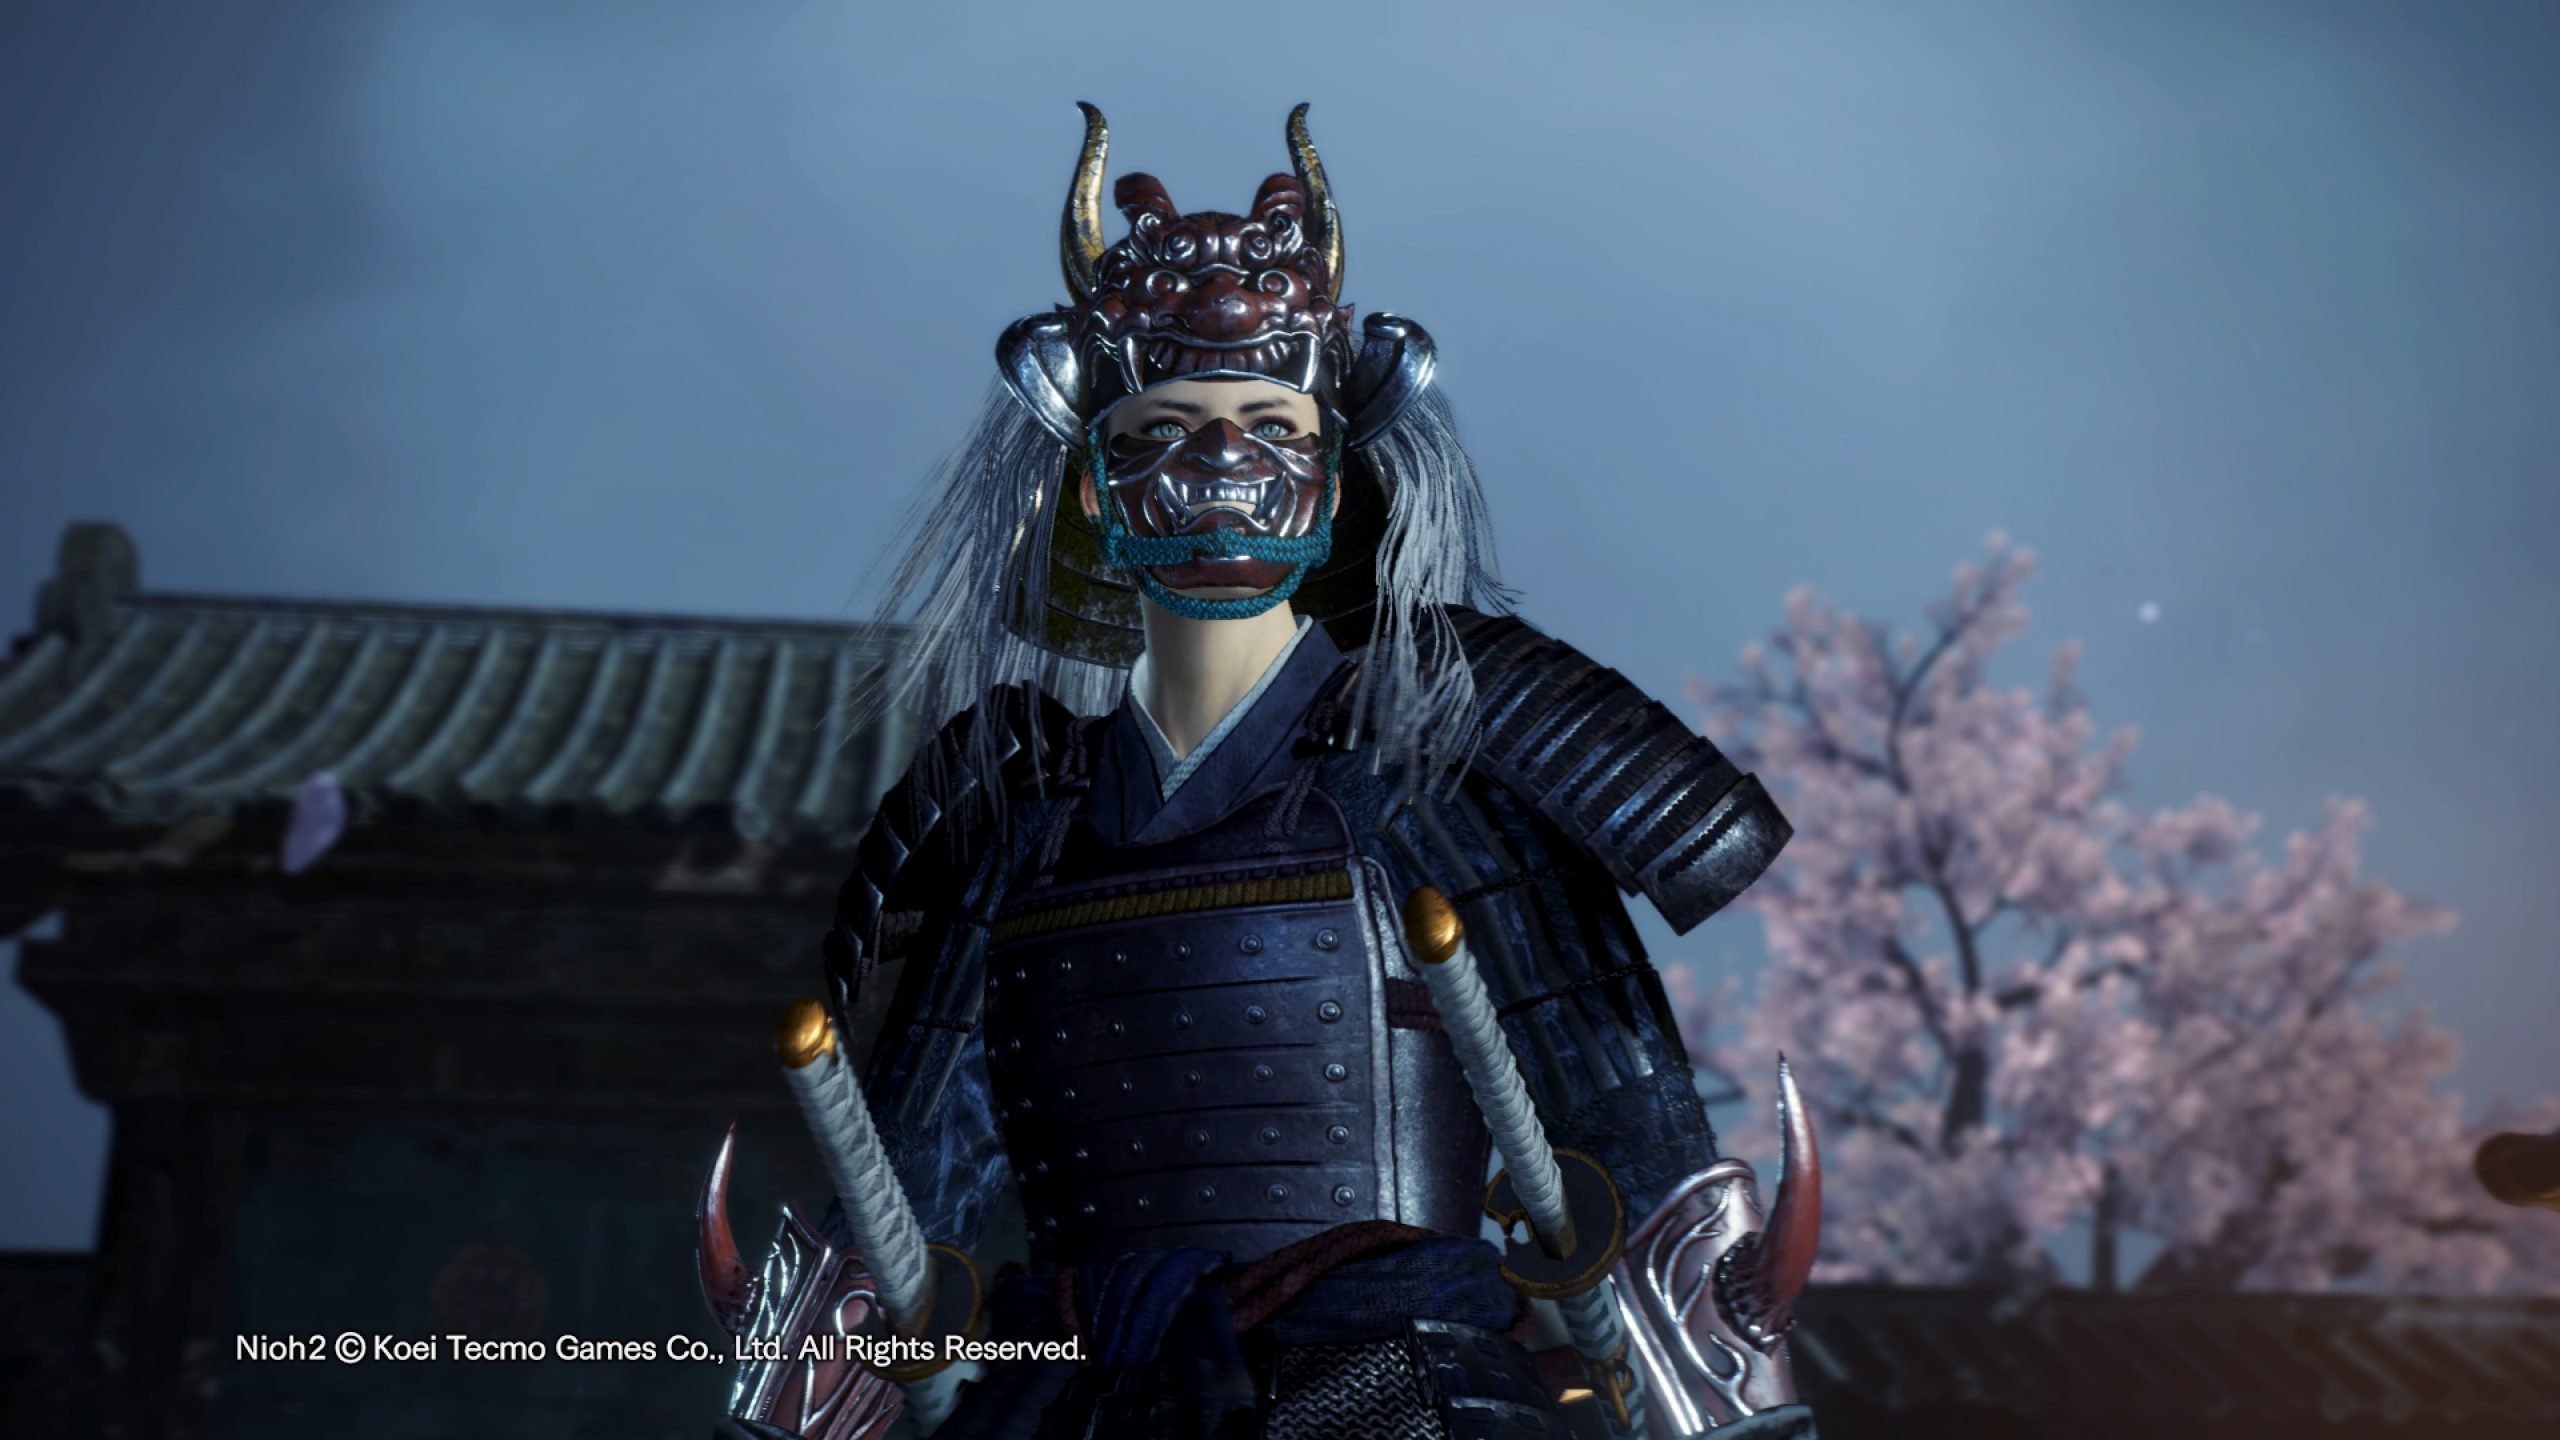 Nioh-2-Remastered-The-Complete-Edition_20210214175604-scaled Mon avis sur Nioh Collection